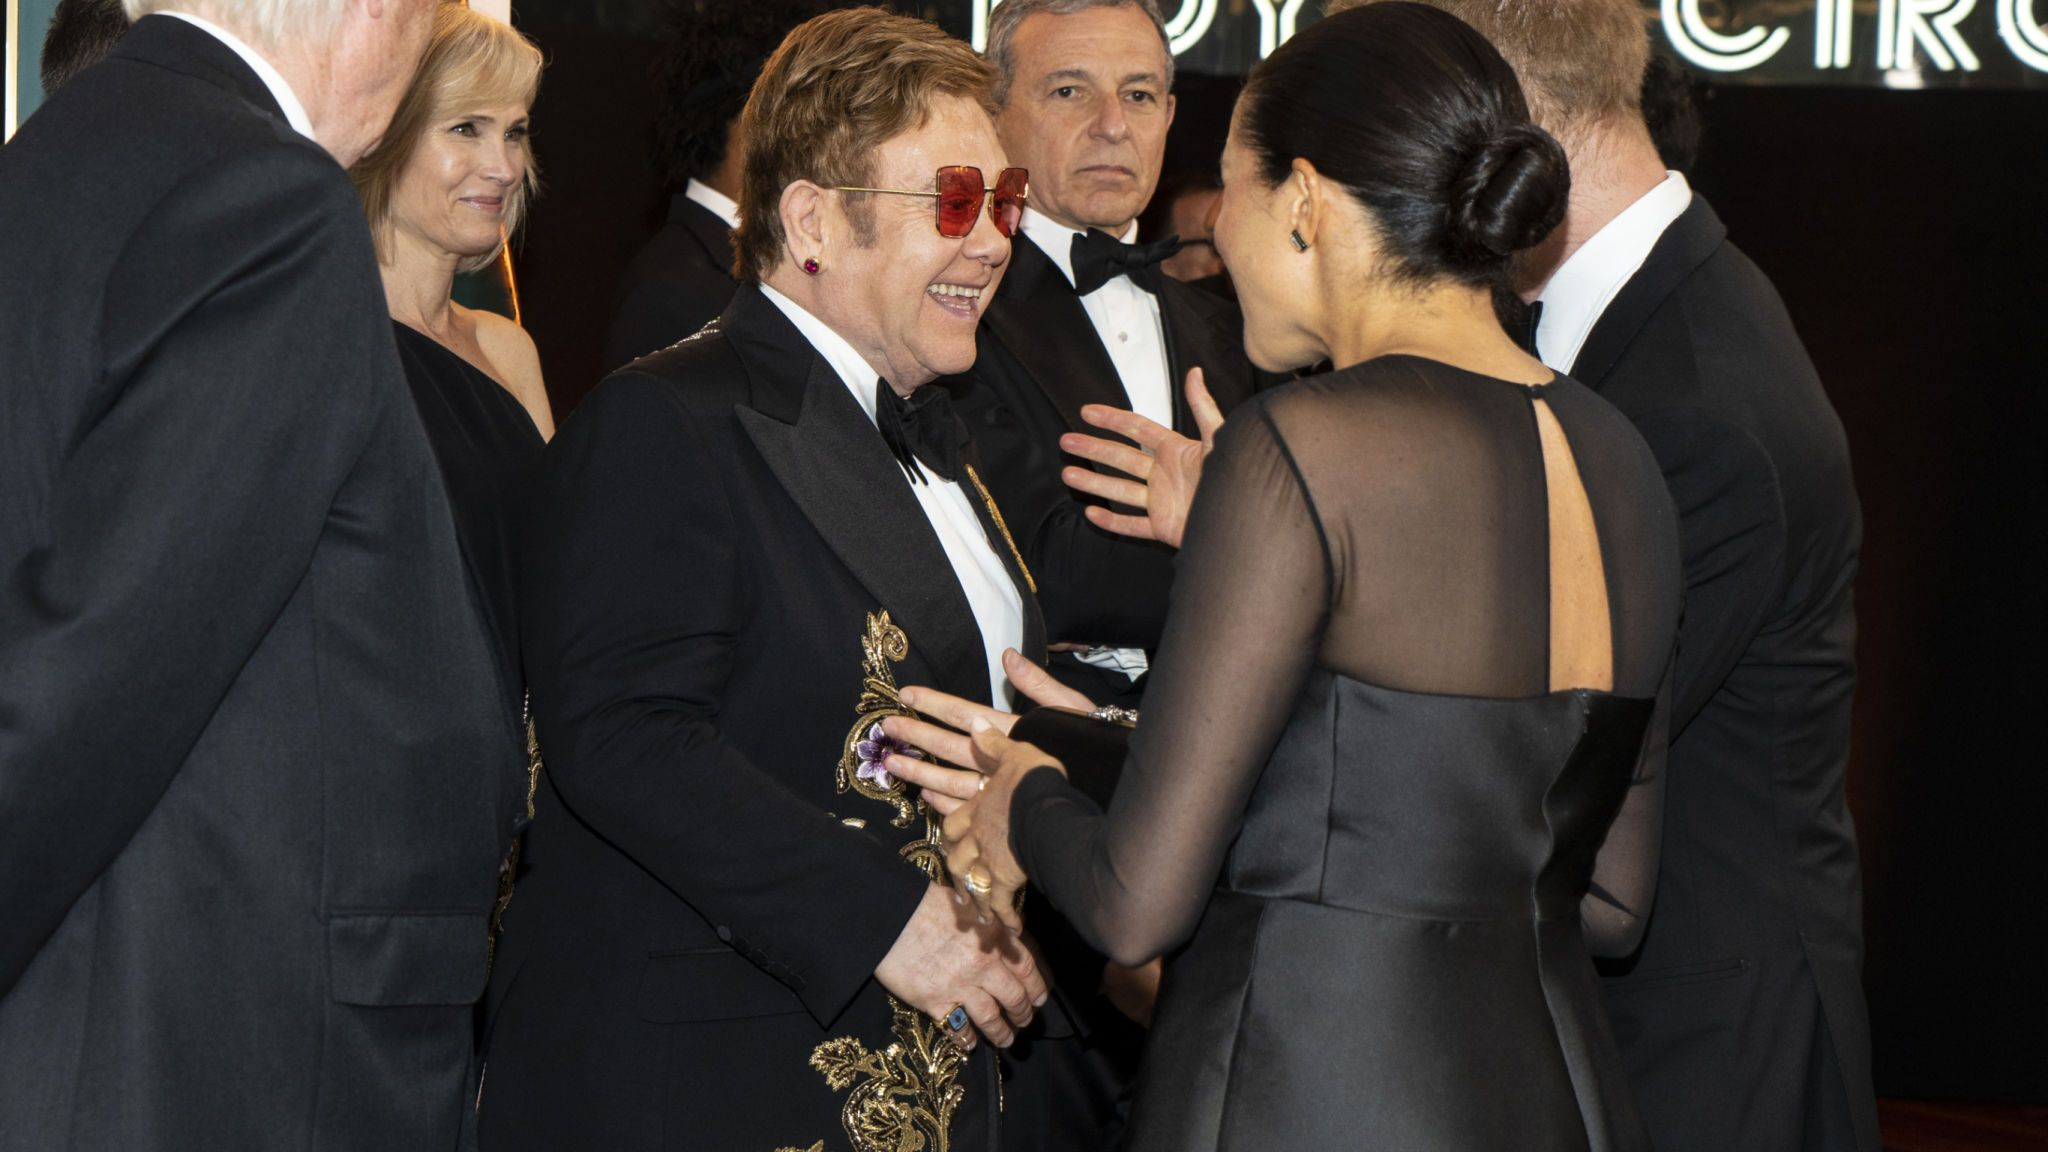 Prince Harry, Duke of Sussex and Meghan, Duchess of Sussex greet British singer-songwriter Elton John and David Furnish at the European Premiere of Disney's